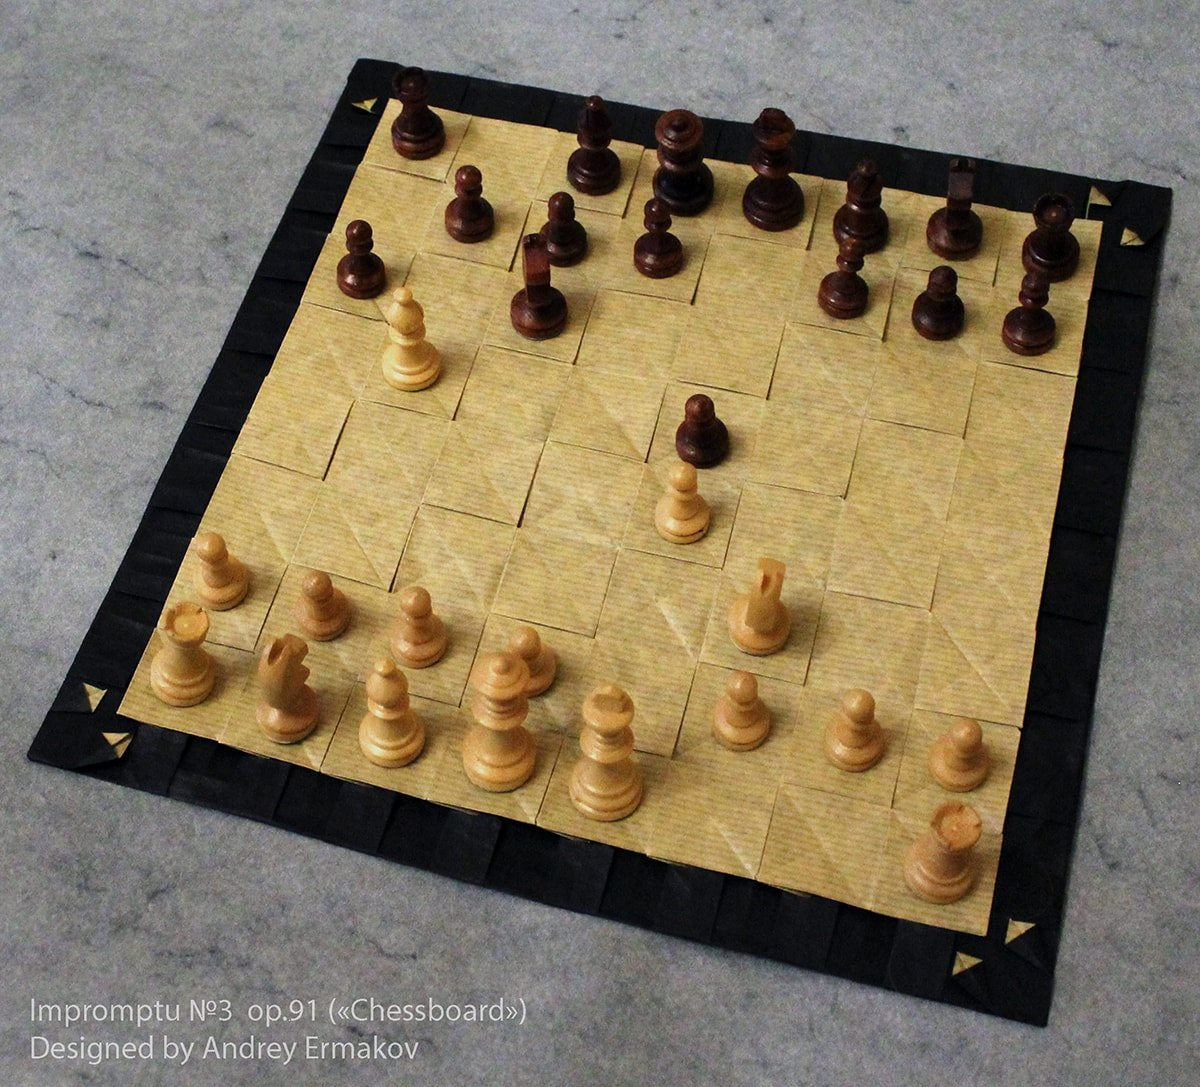 Chessboard in Use